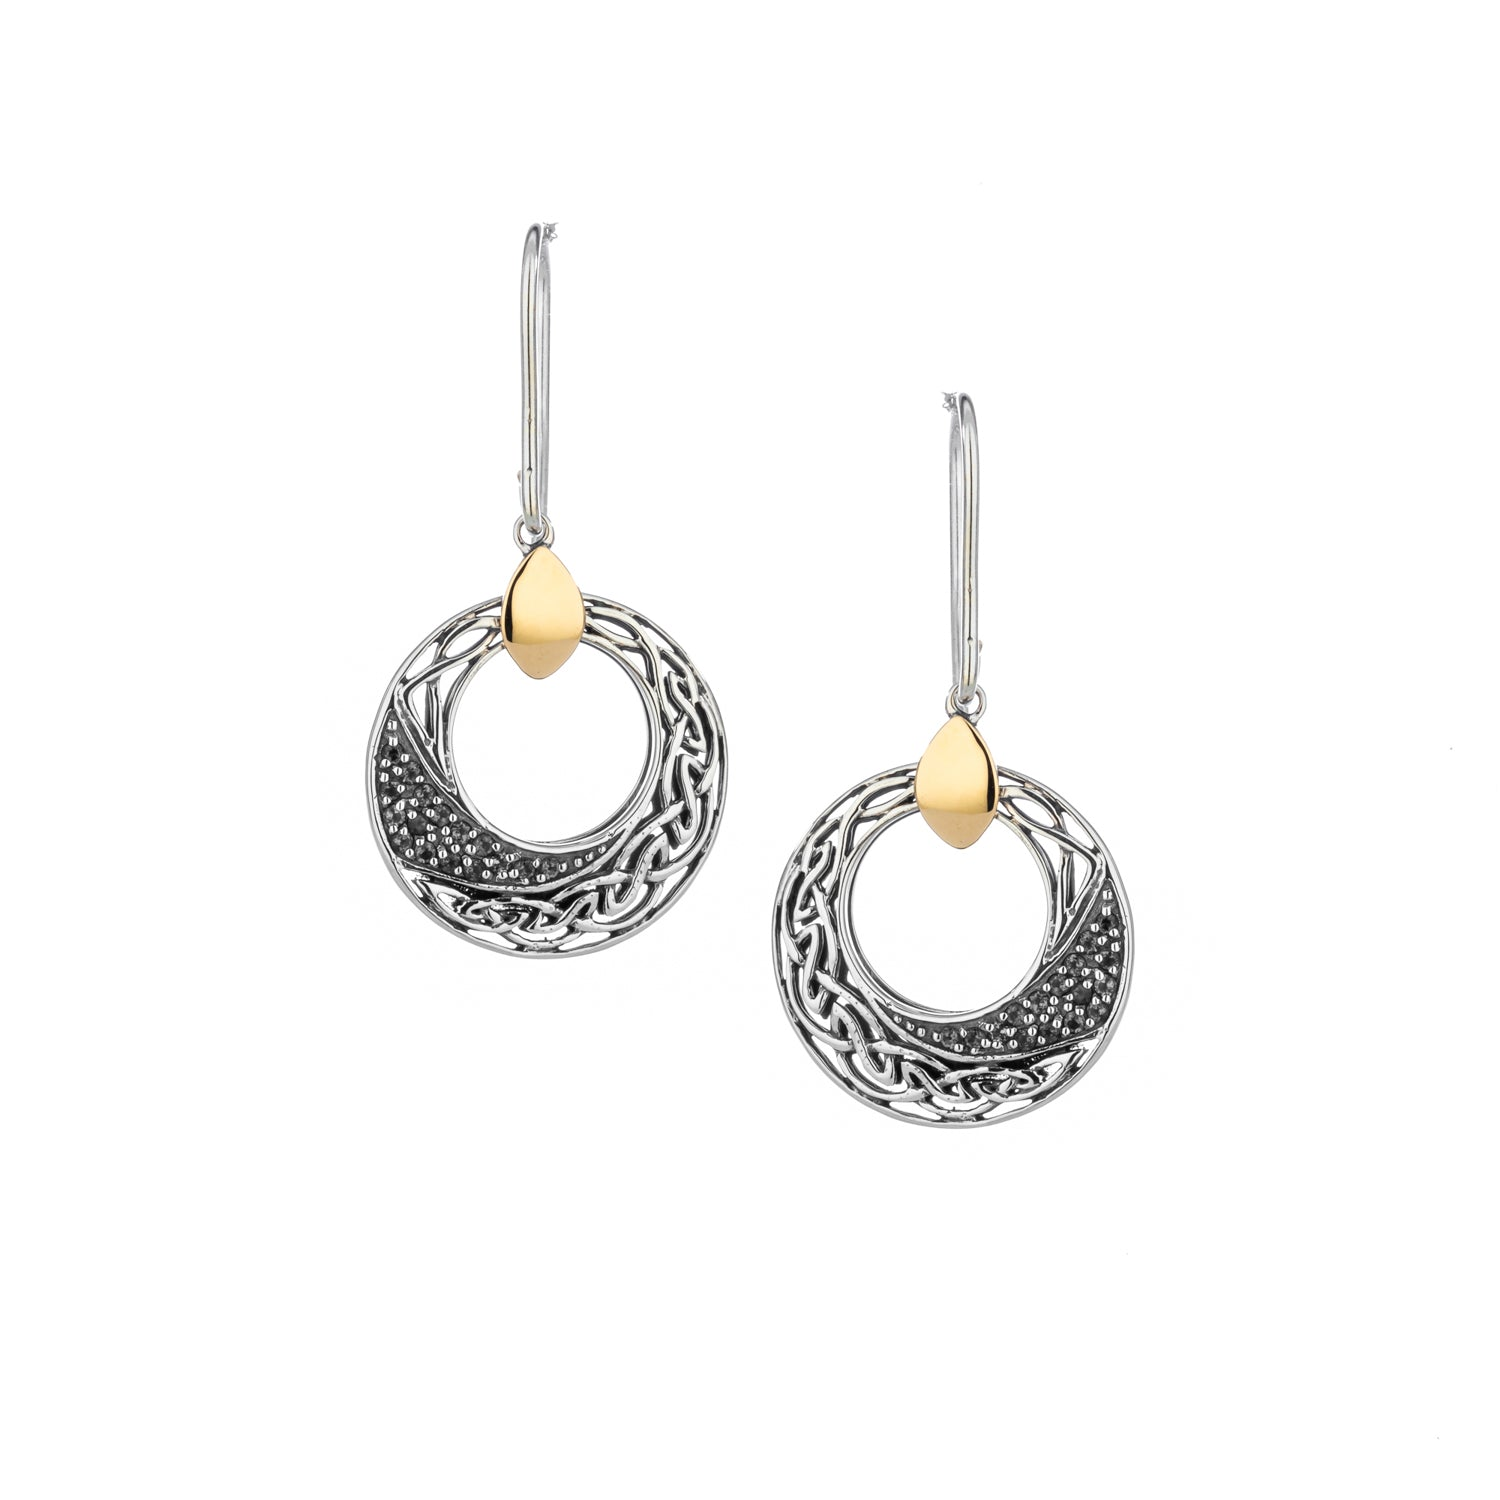 Earrings 10k White Topaz Comet Round Hook Earrings from welch and company jewelers near syracuse ny